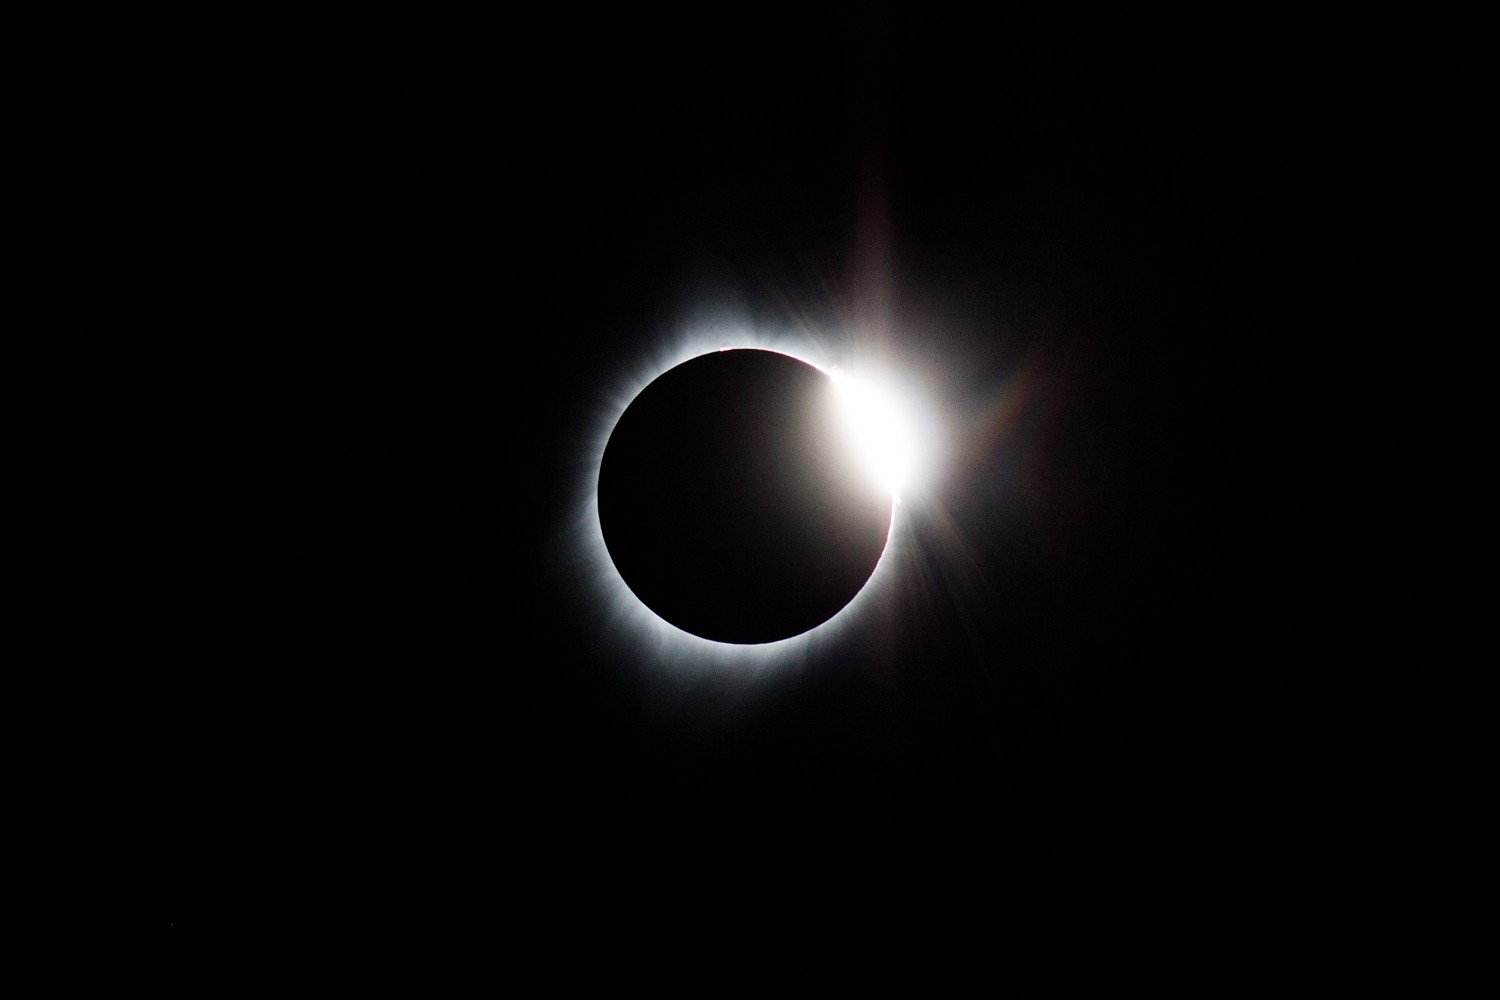 Diamond ring just when Totality ended. Time to put glasses pack on.